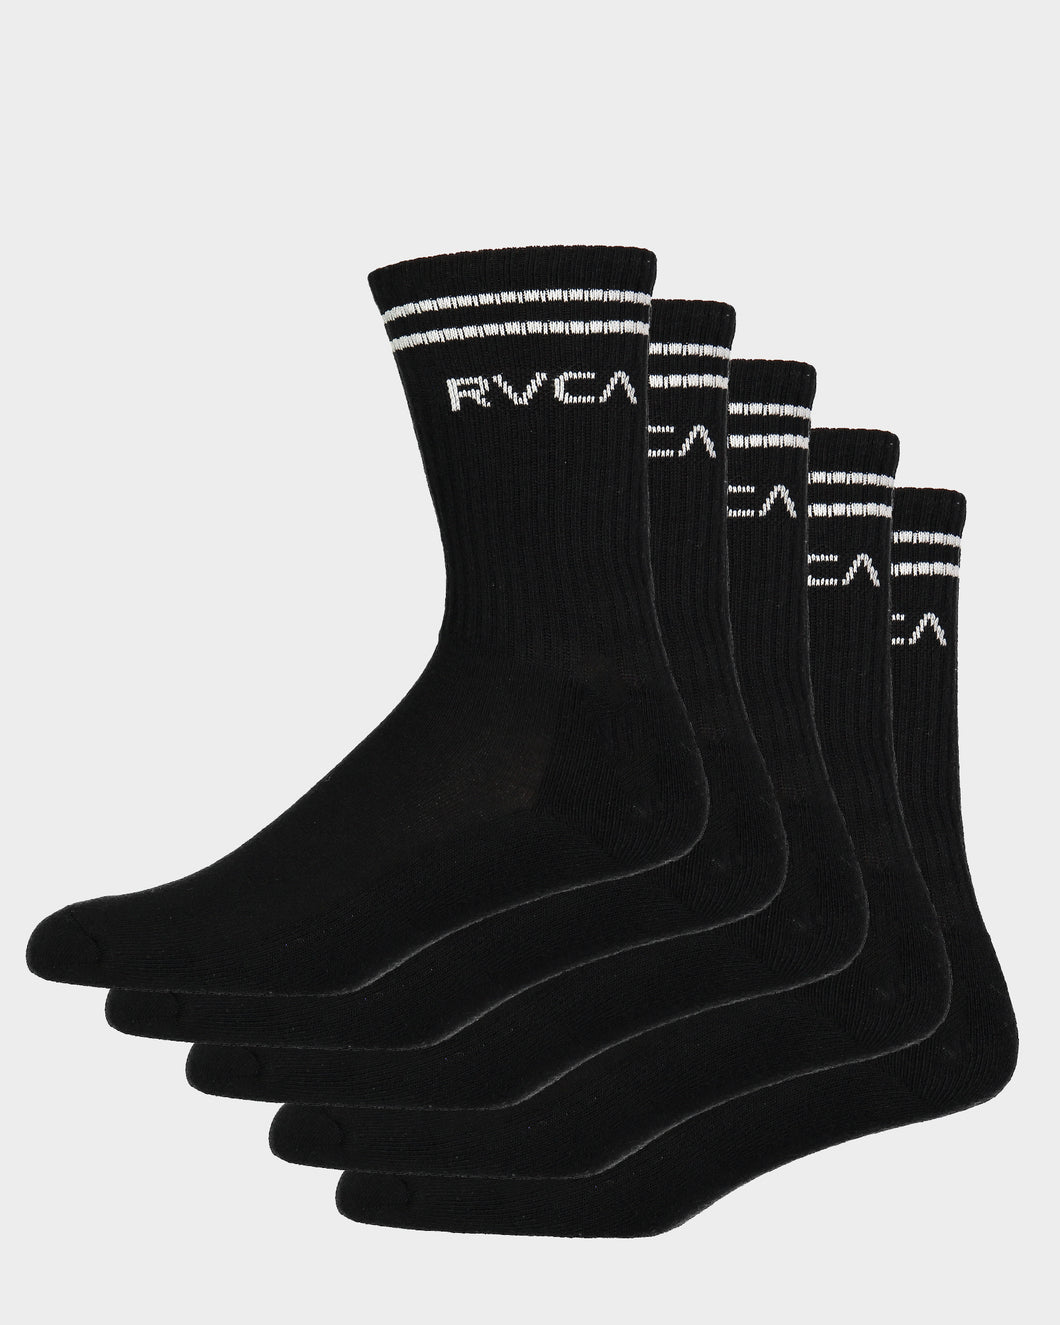 RVCA Union Sock 111 Black - 5 Pack